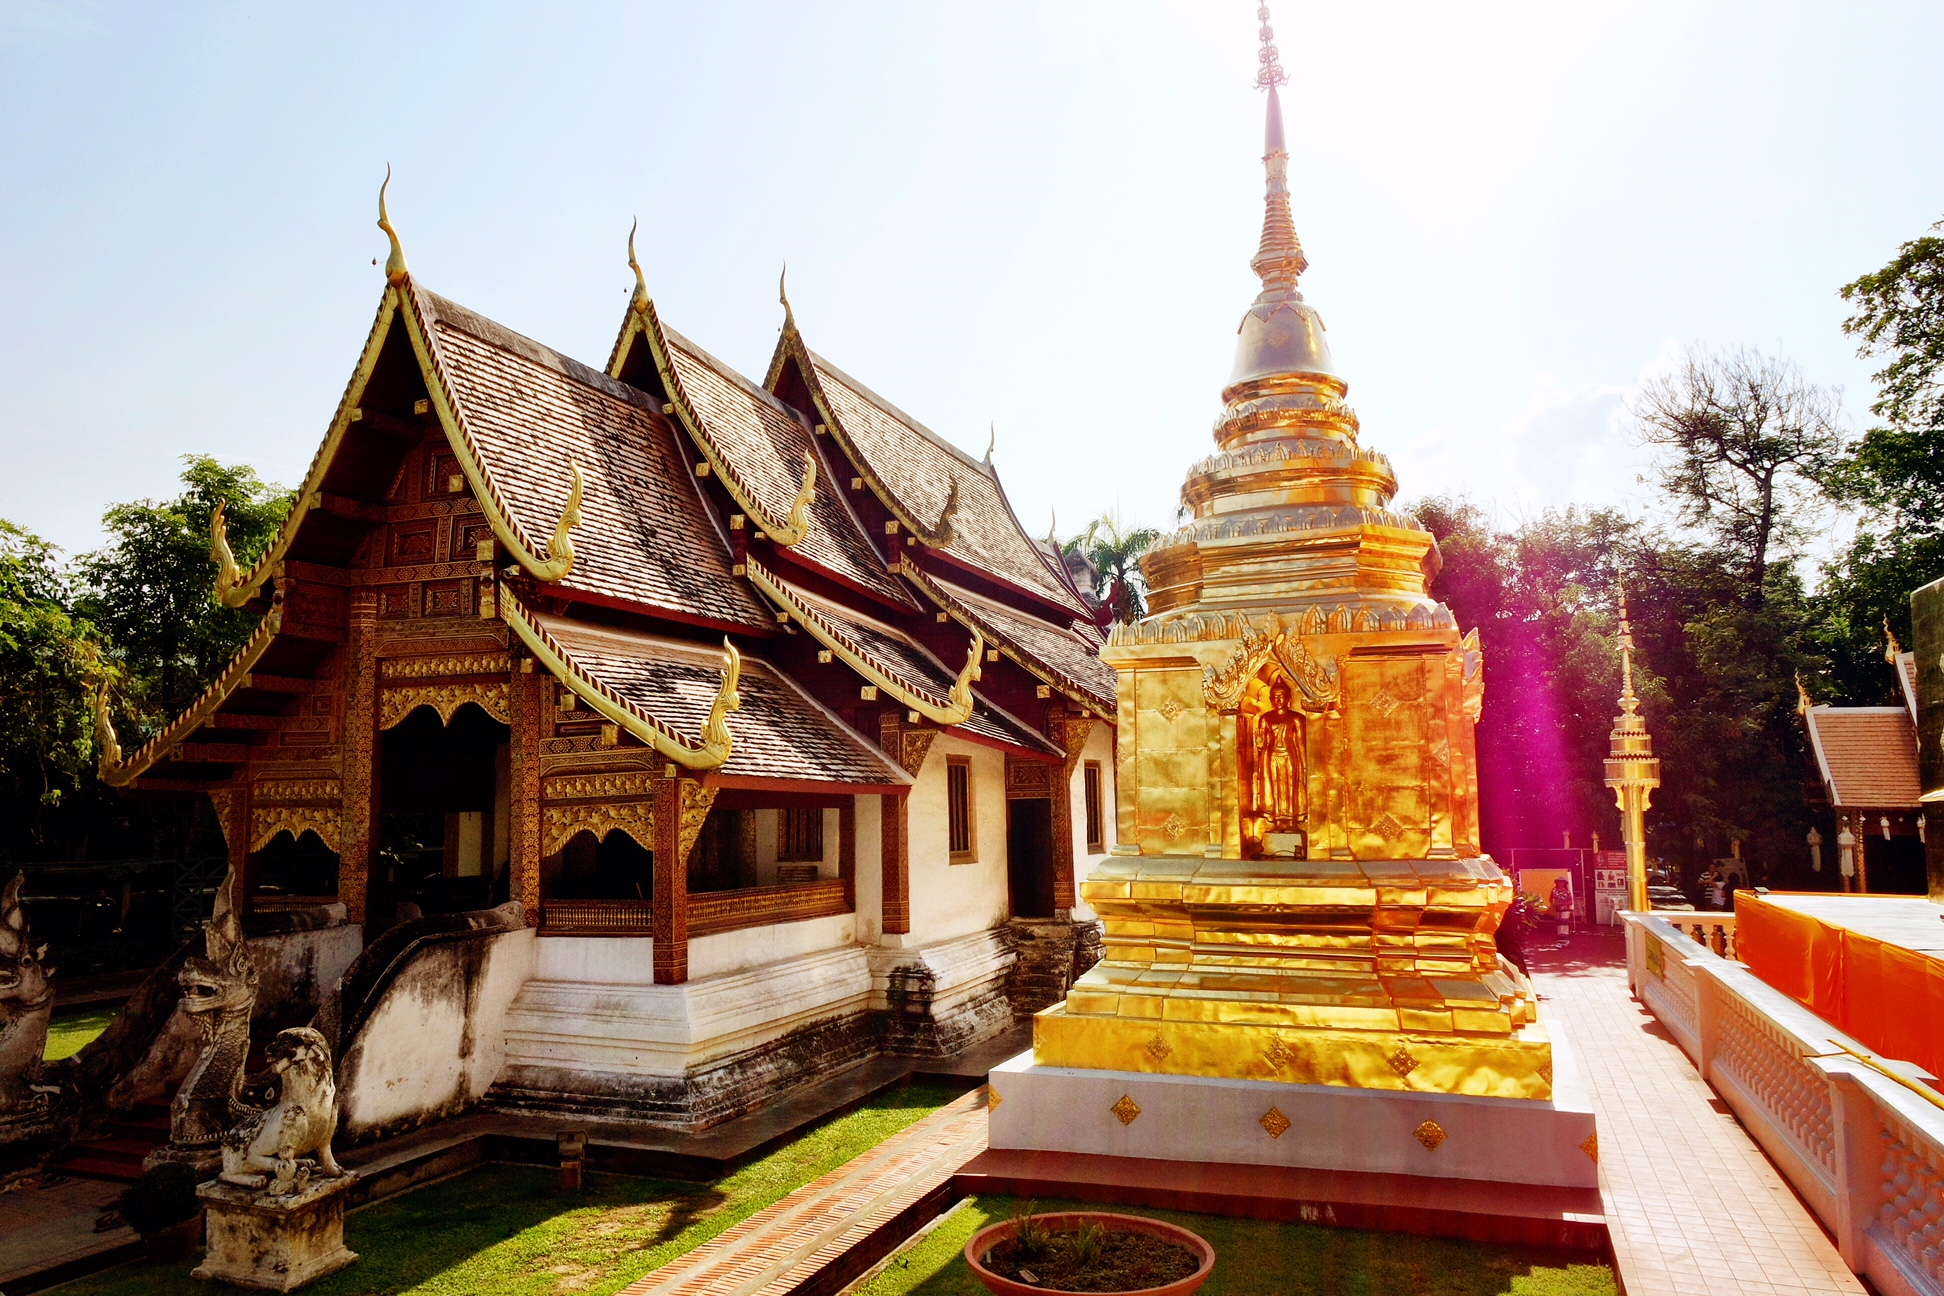 Wat Phra Singh is held up as one of the best examples of Lanna architecture